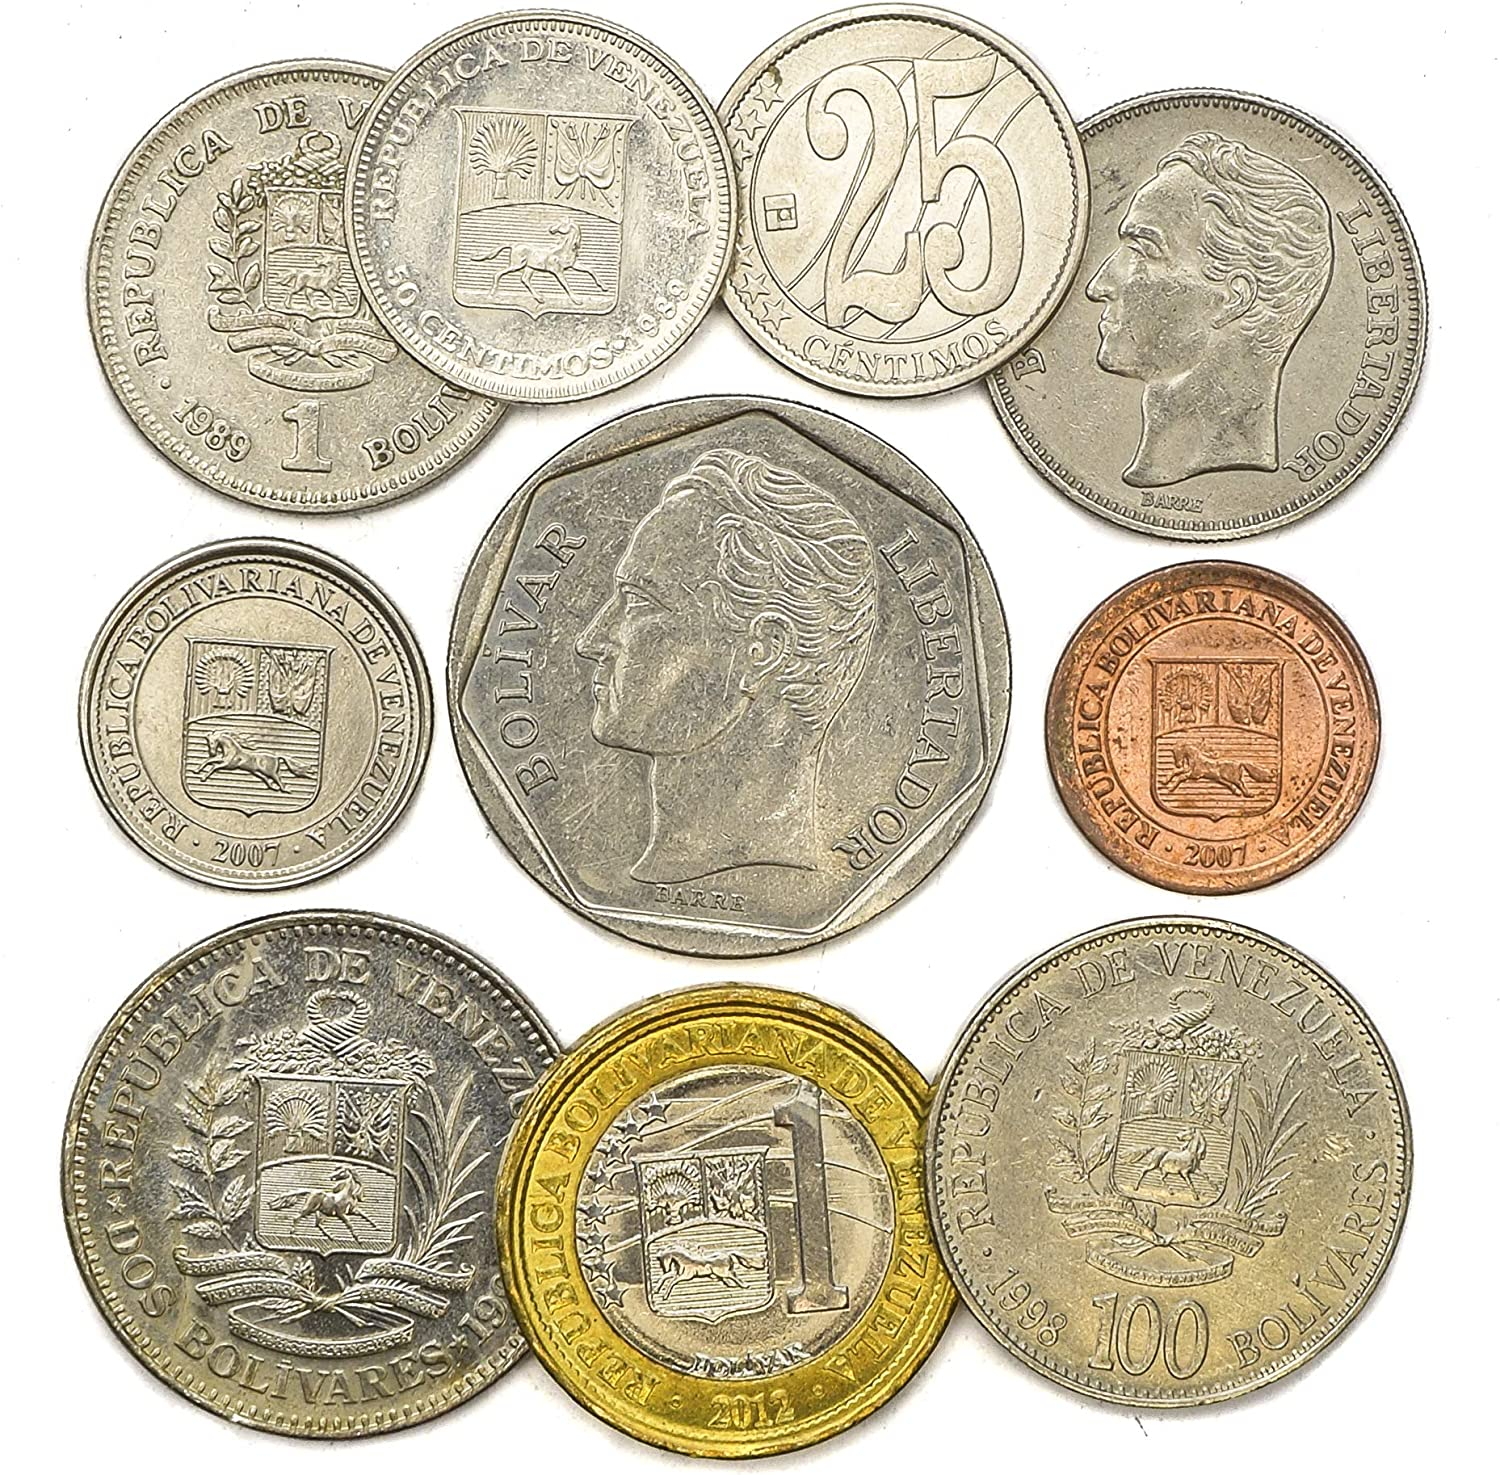 COINS FROM BOLIVARIAN REPUBLIC OF VENEZUELA SOUTH AMERICAN OLD COLLECTIBLE COINS